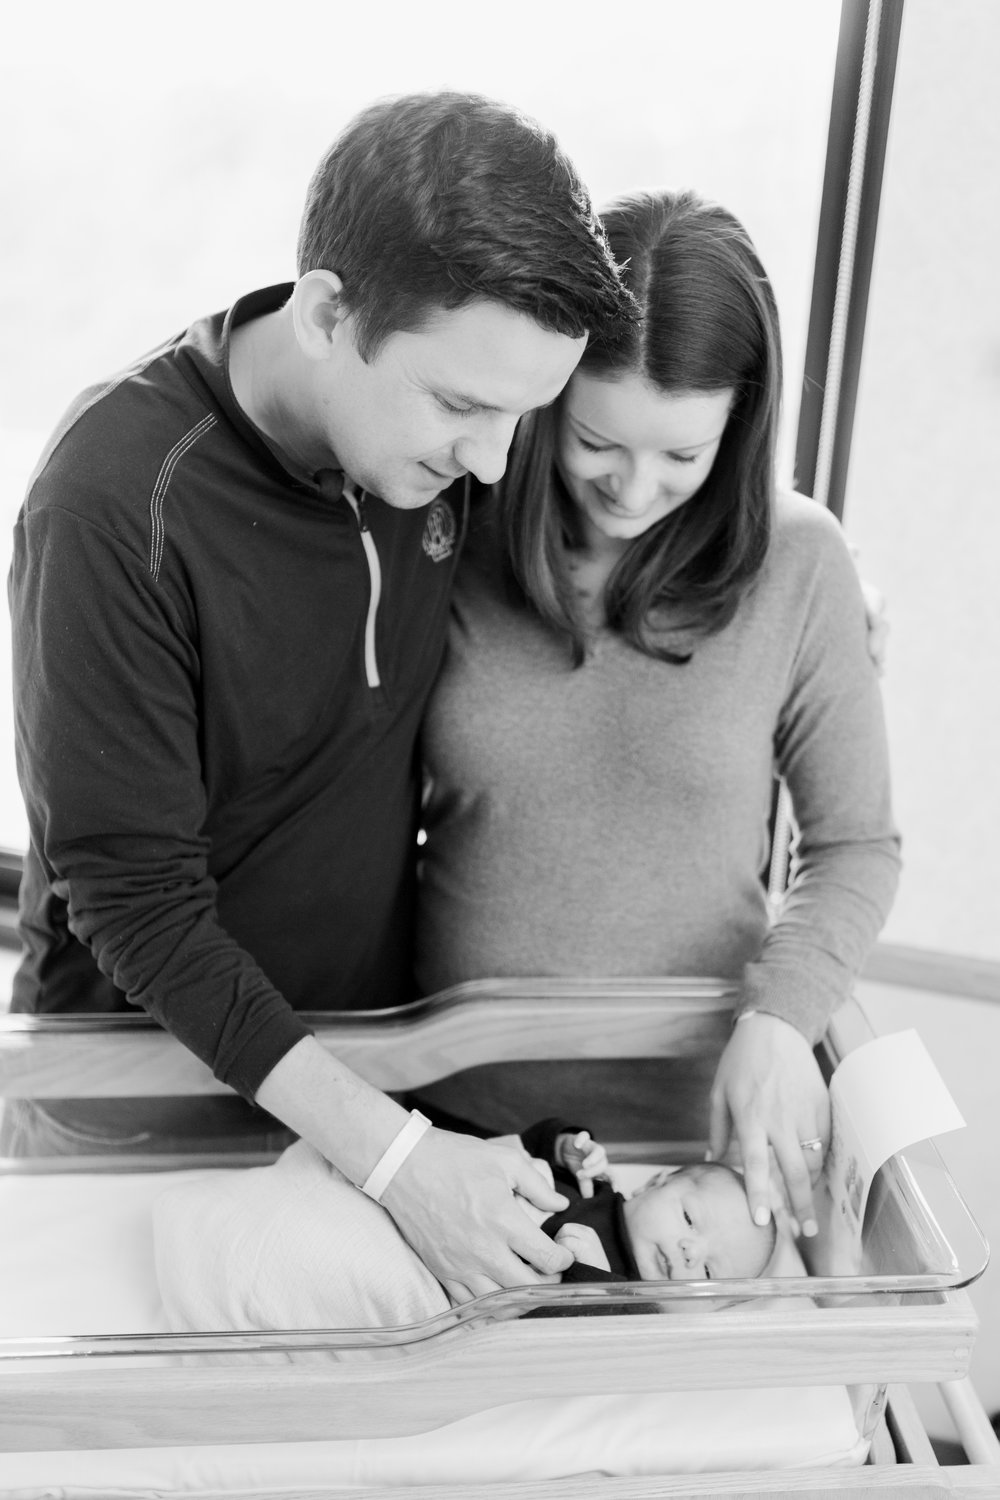 vanessa wyler photography fresh 48 hospital newborn photography brookfield waukesha wisconsin